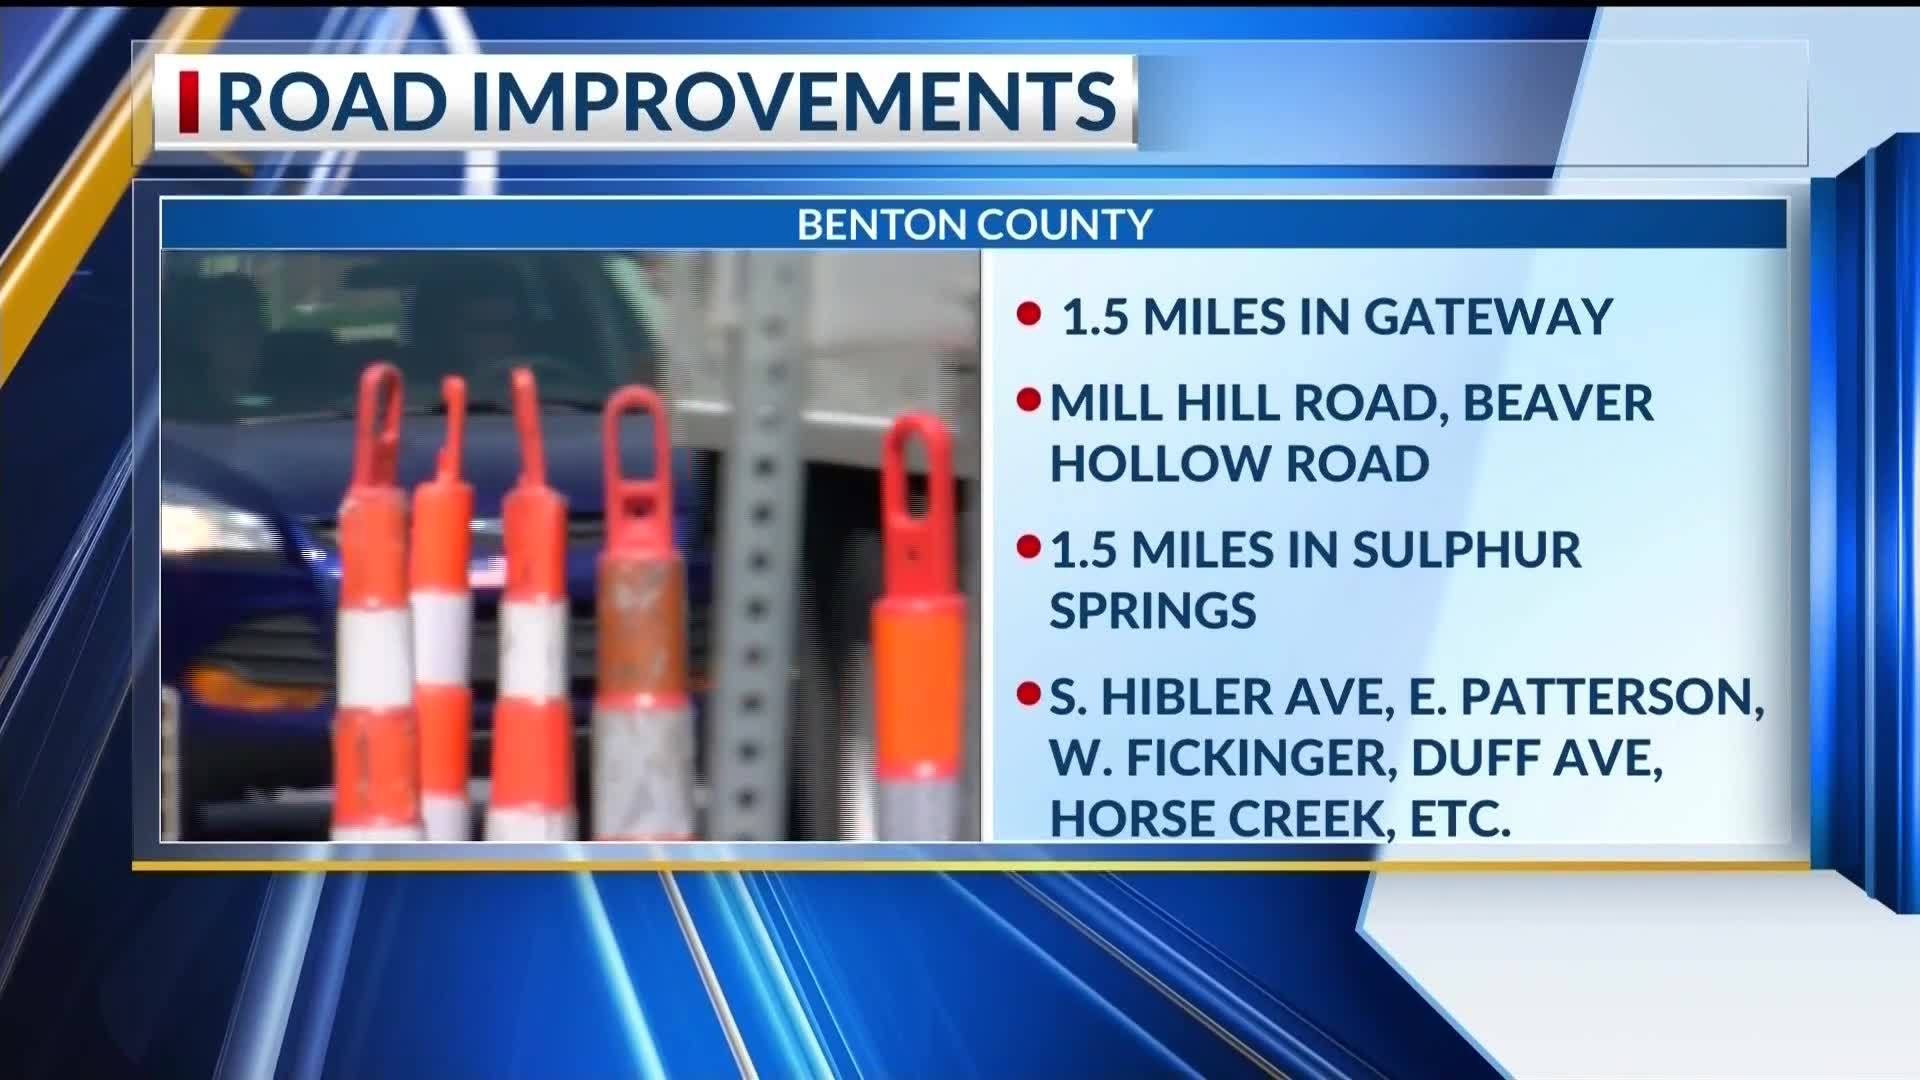 Benton_County_Roadway_Improvements_4_20190316232359